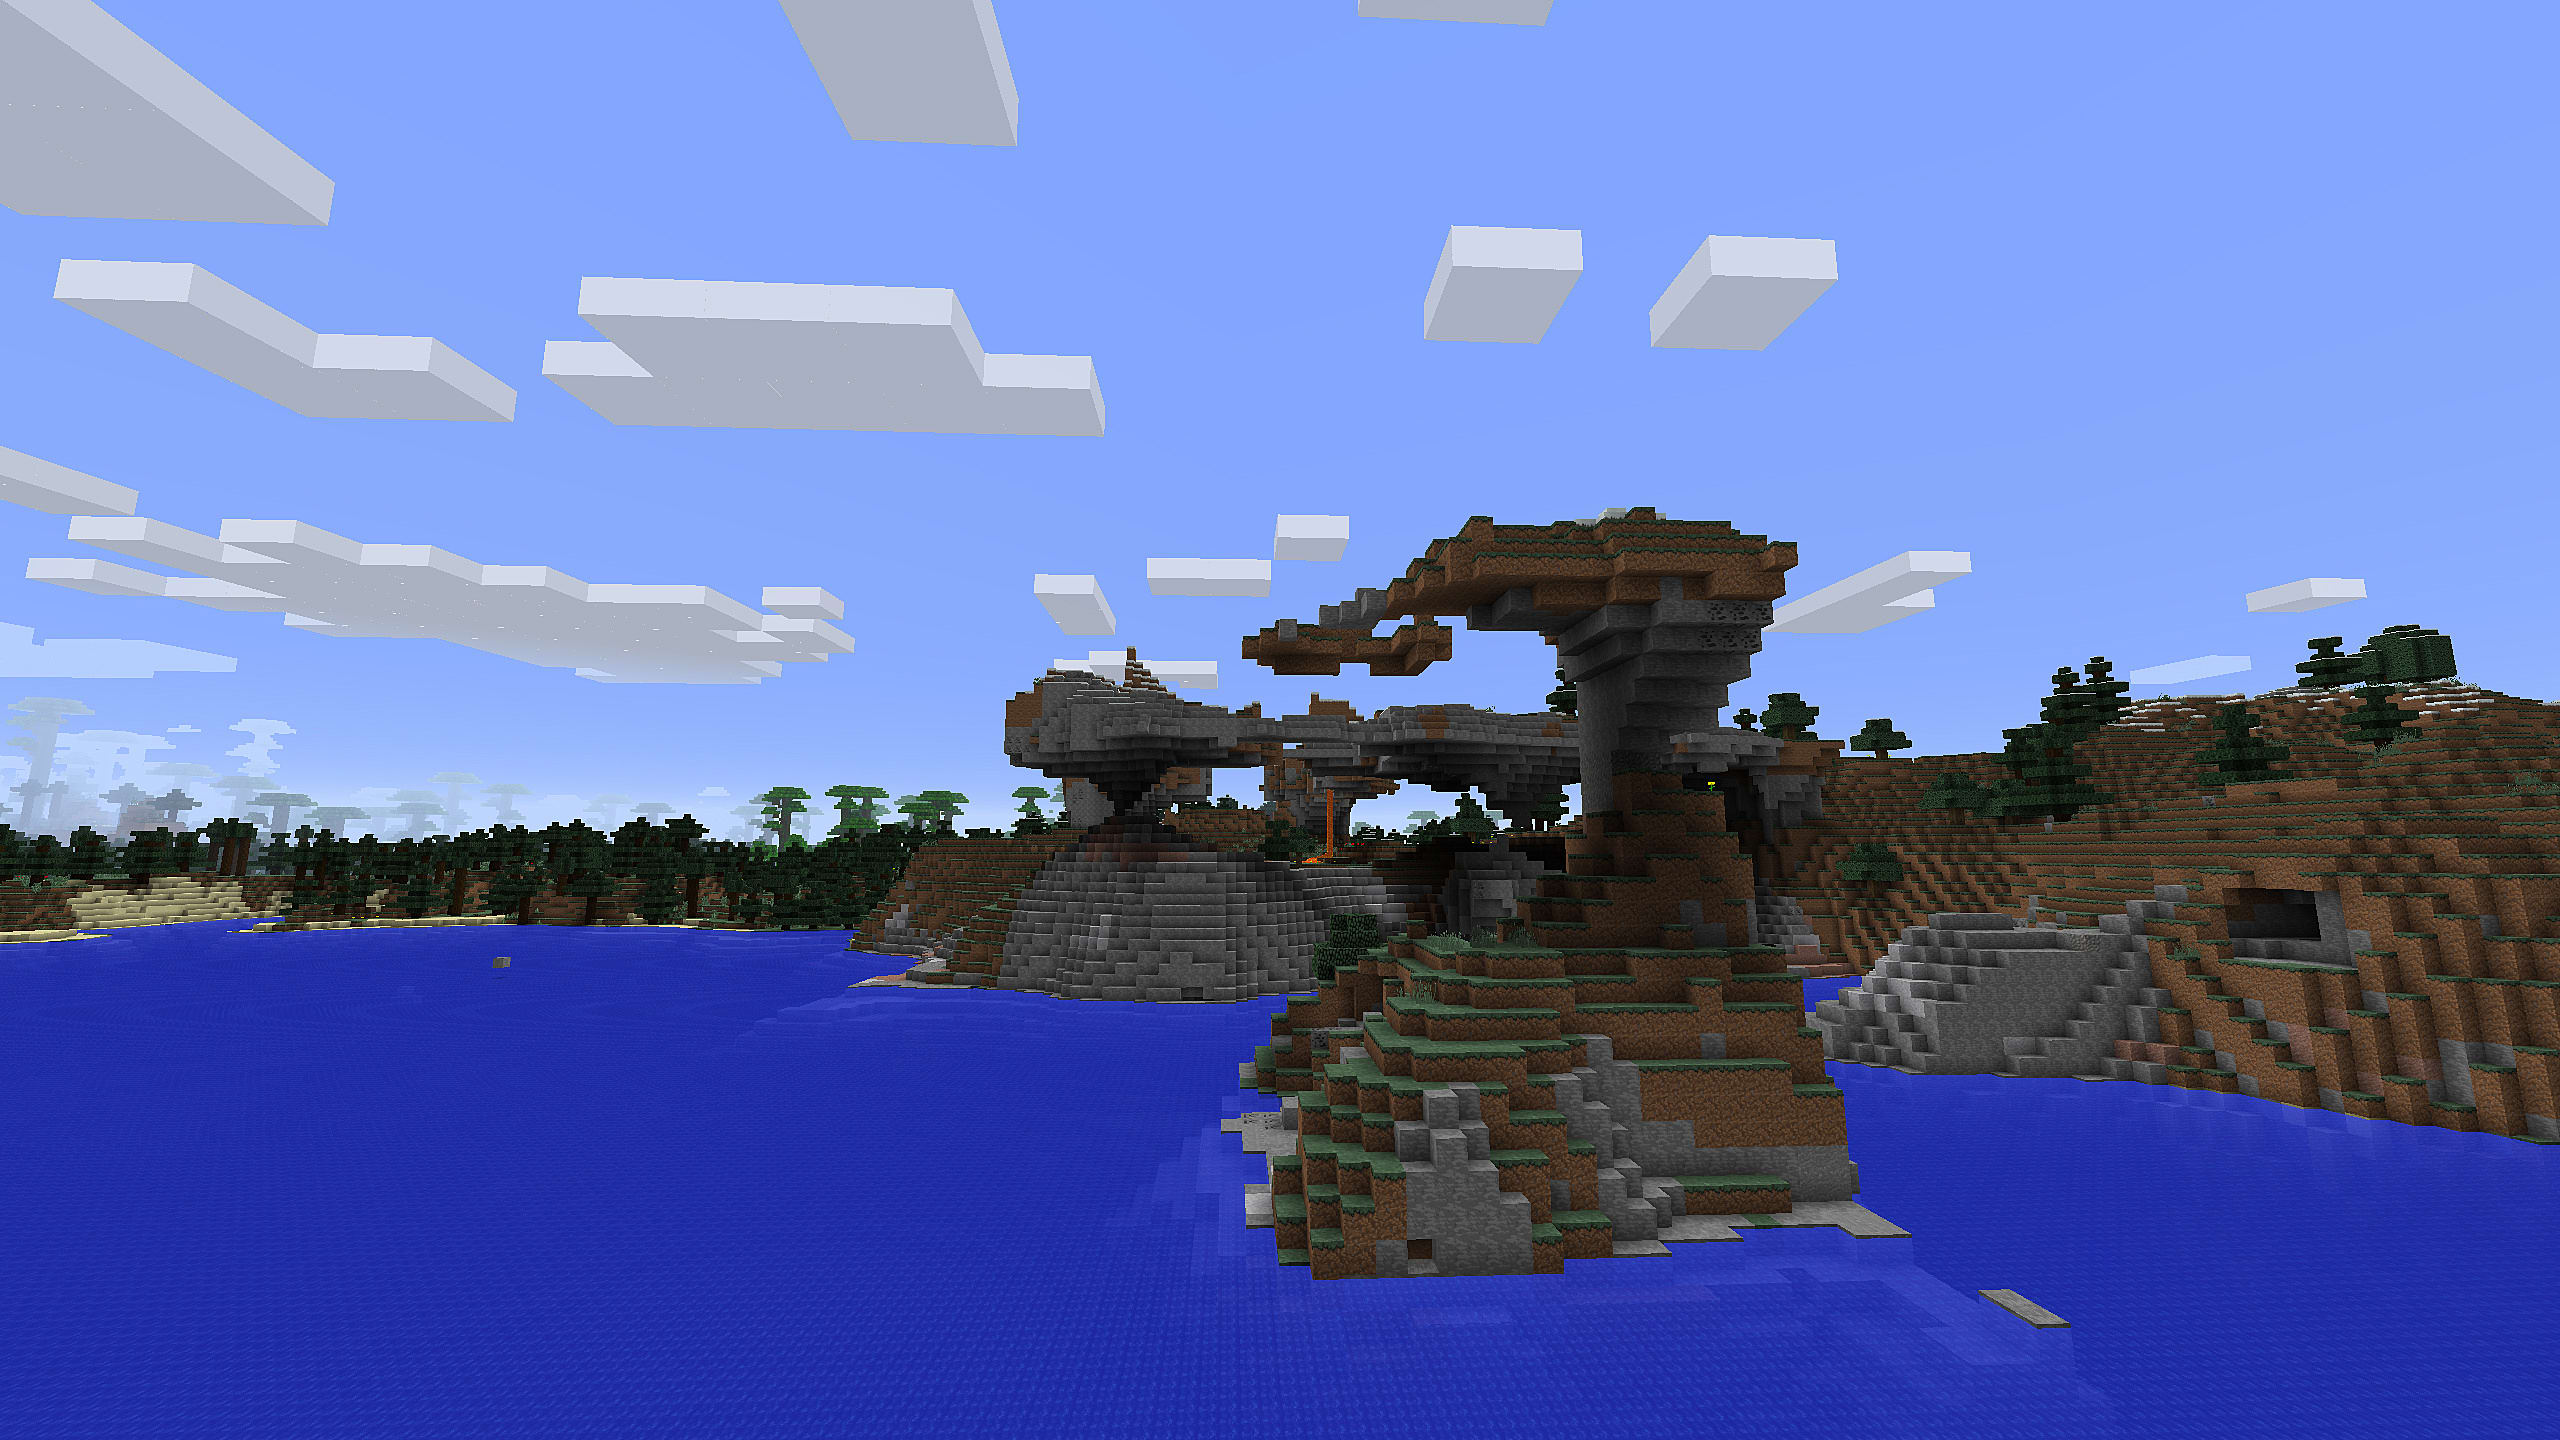 Top 11 Minecraft Seeds for Gathering Resources in 1 12 | Minecraft